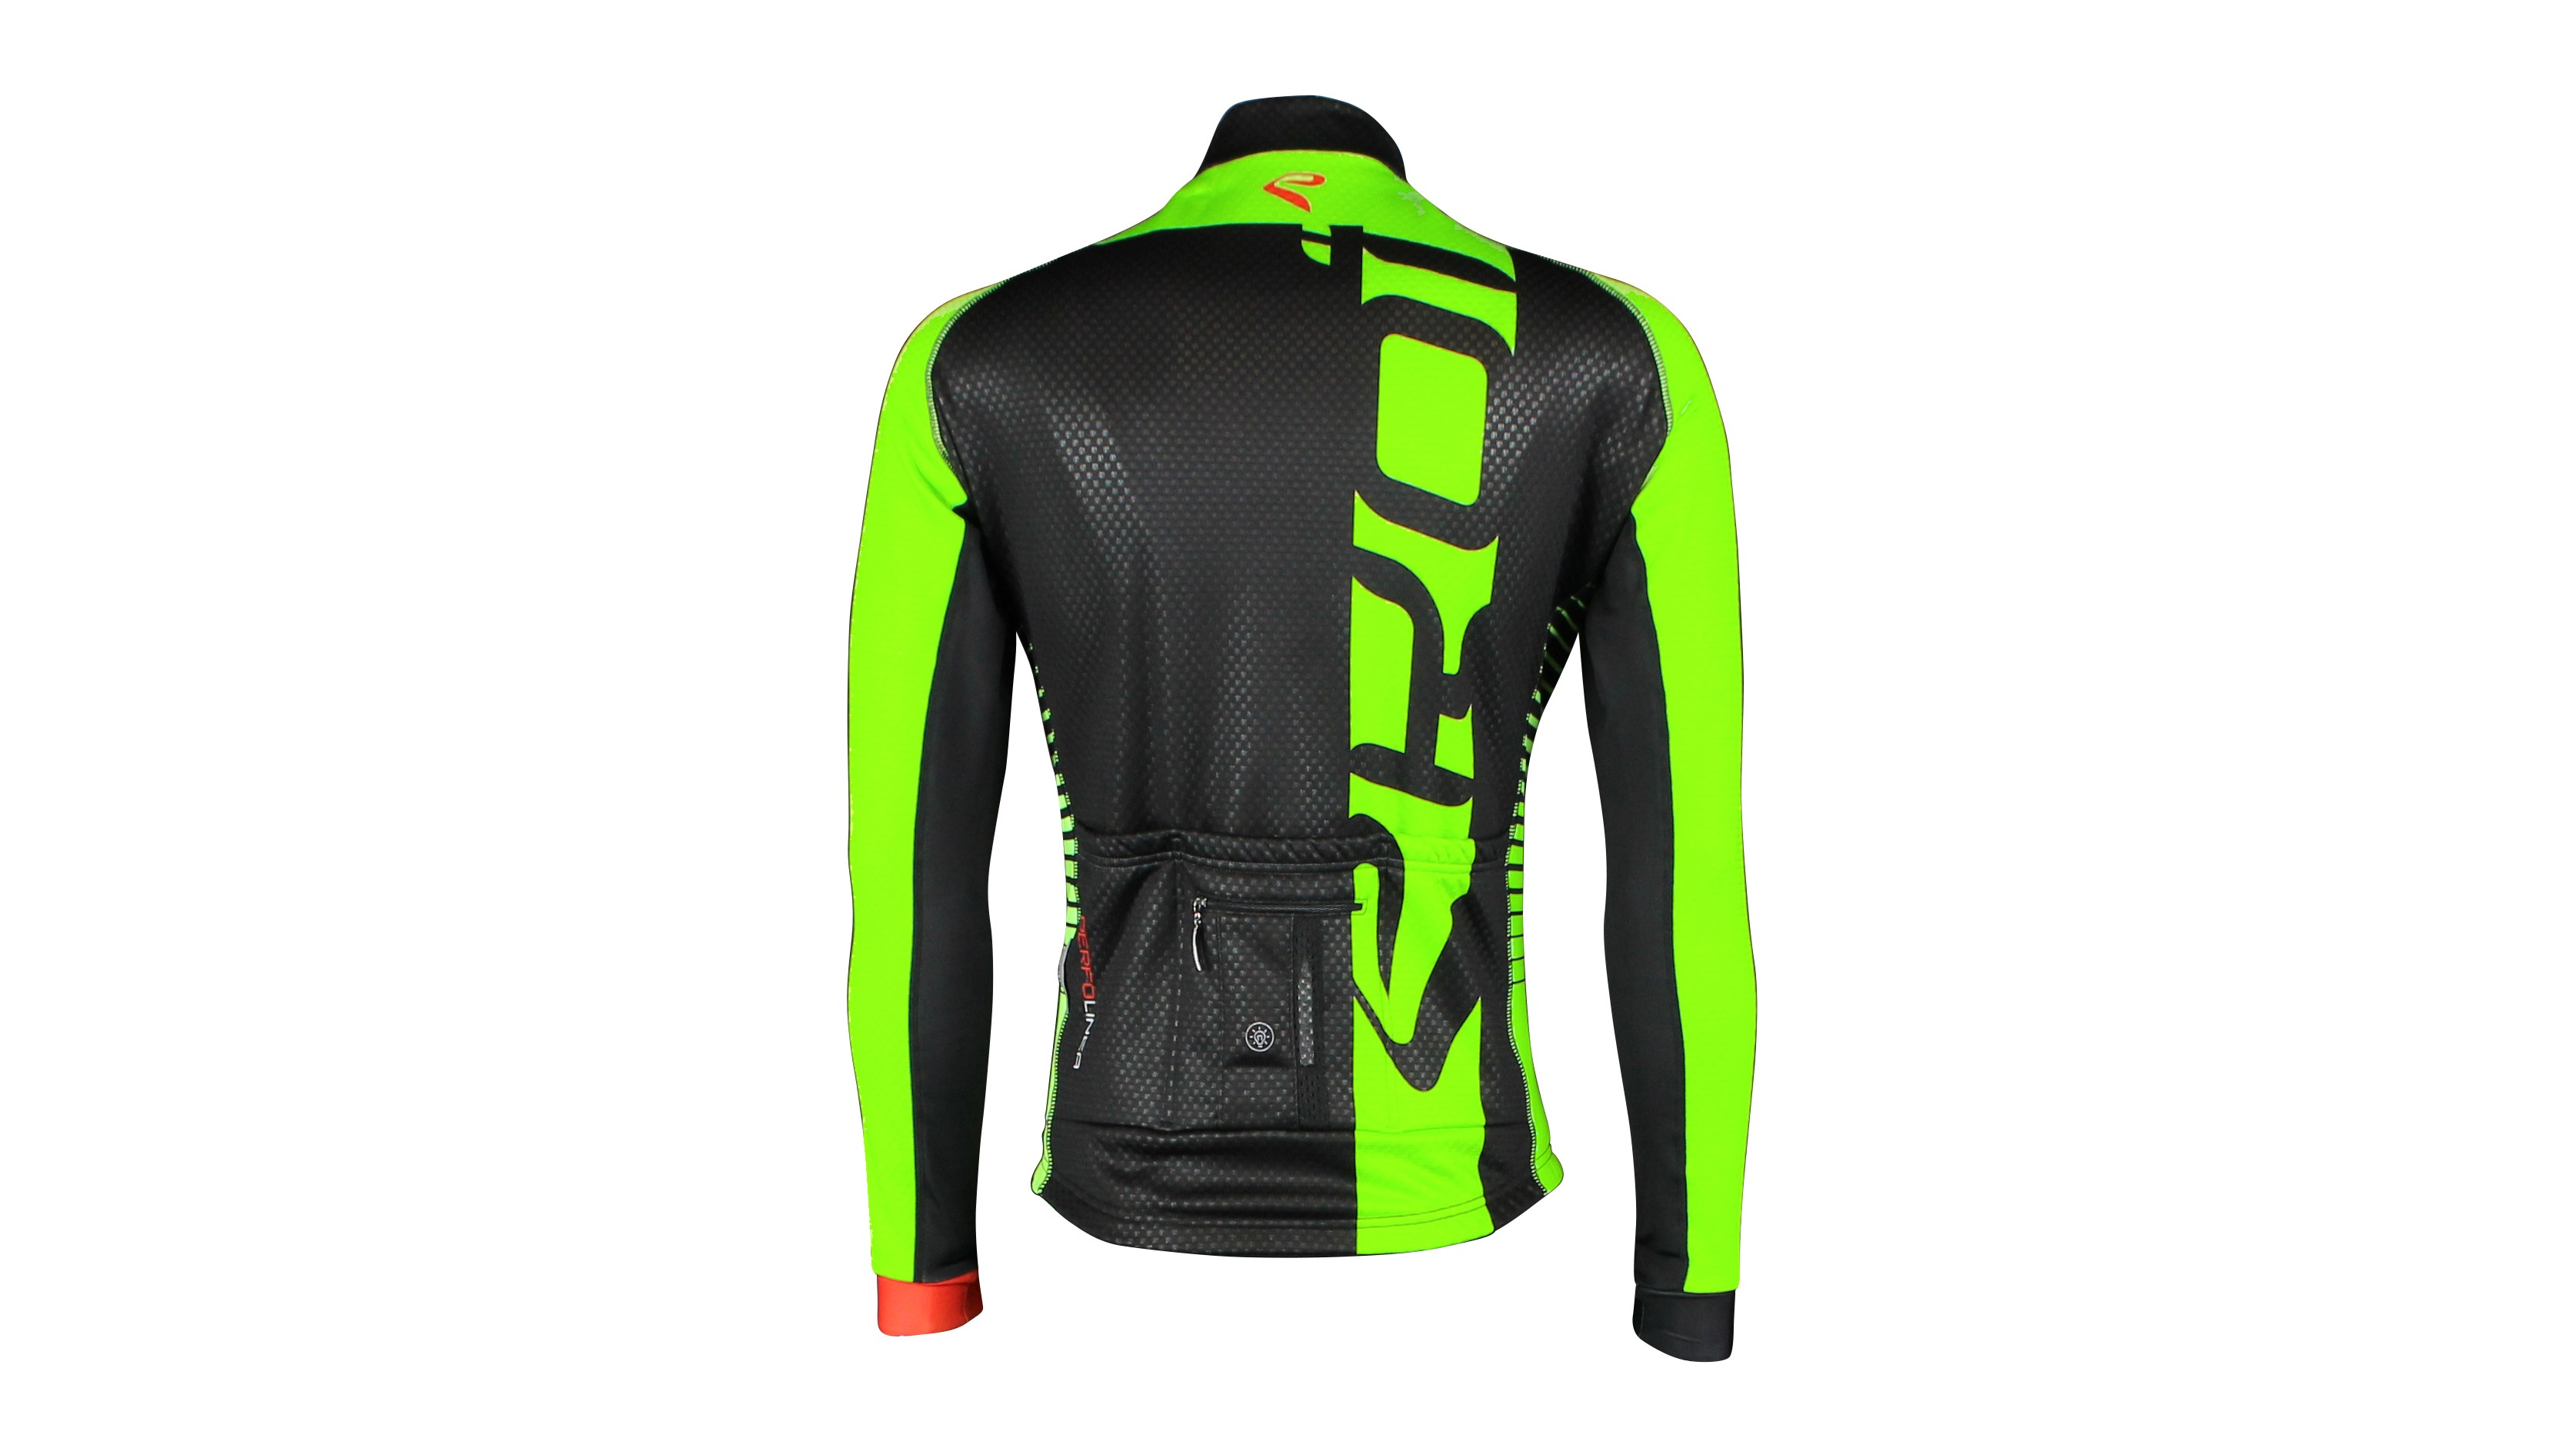 The Ekoi Perfolinea Flash jacket has an integrated LED in the back, with four different modes: continuous, fast, very fast or flashy. We like the sound of flashy